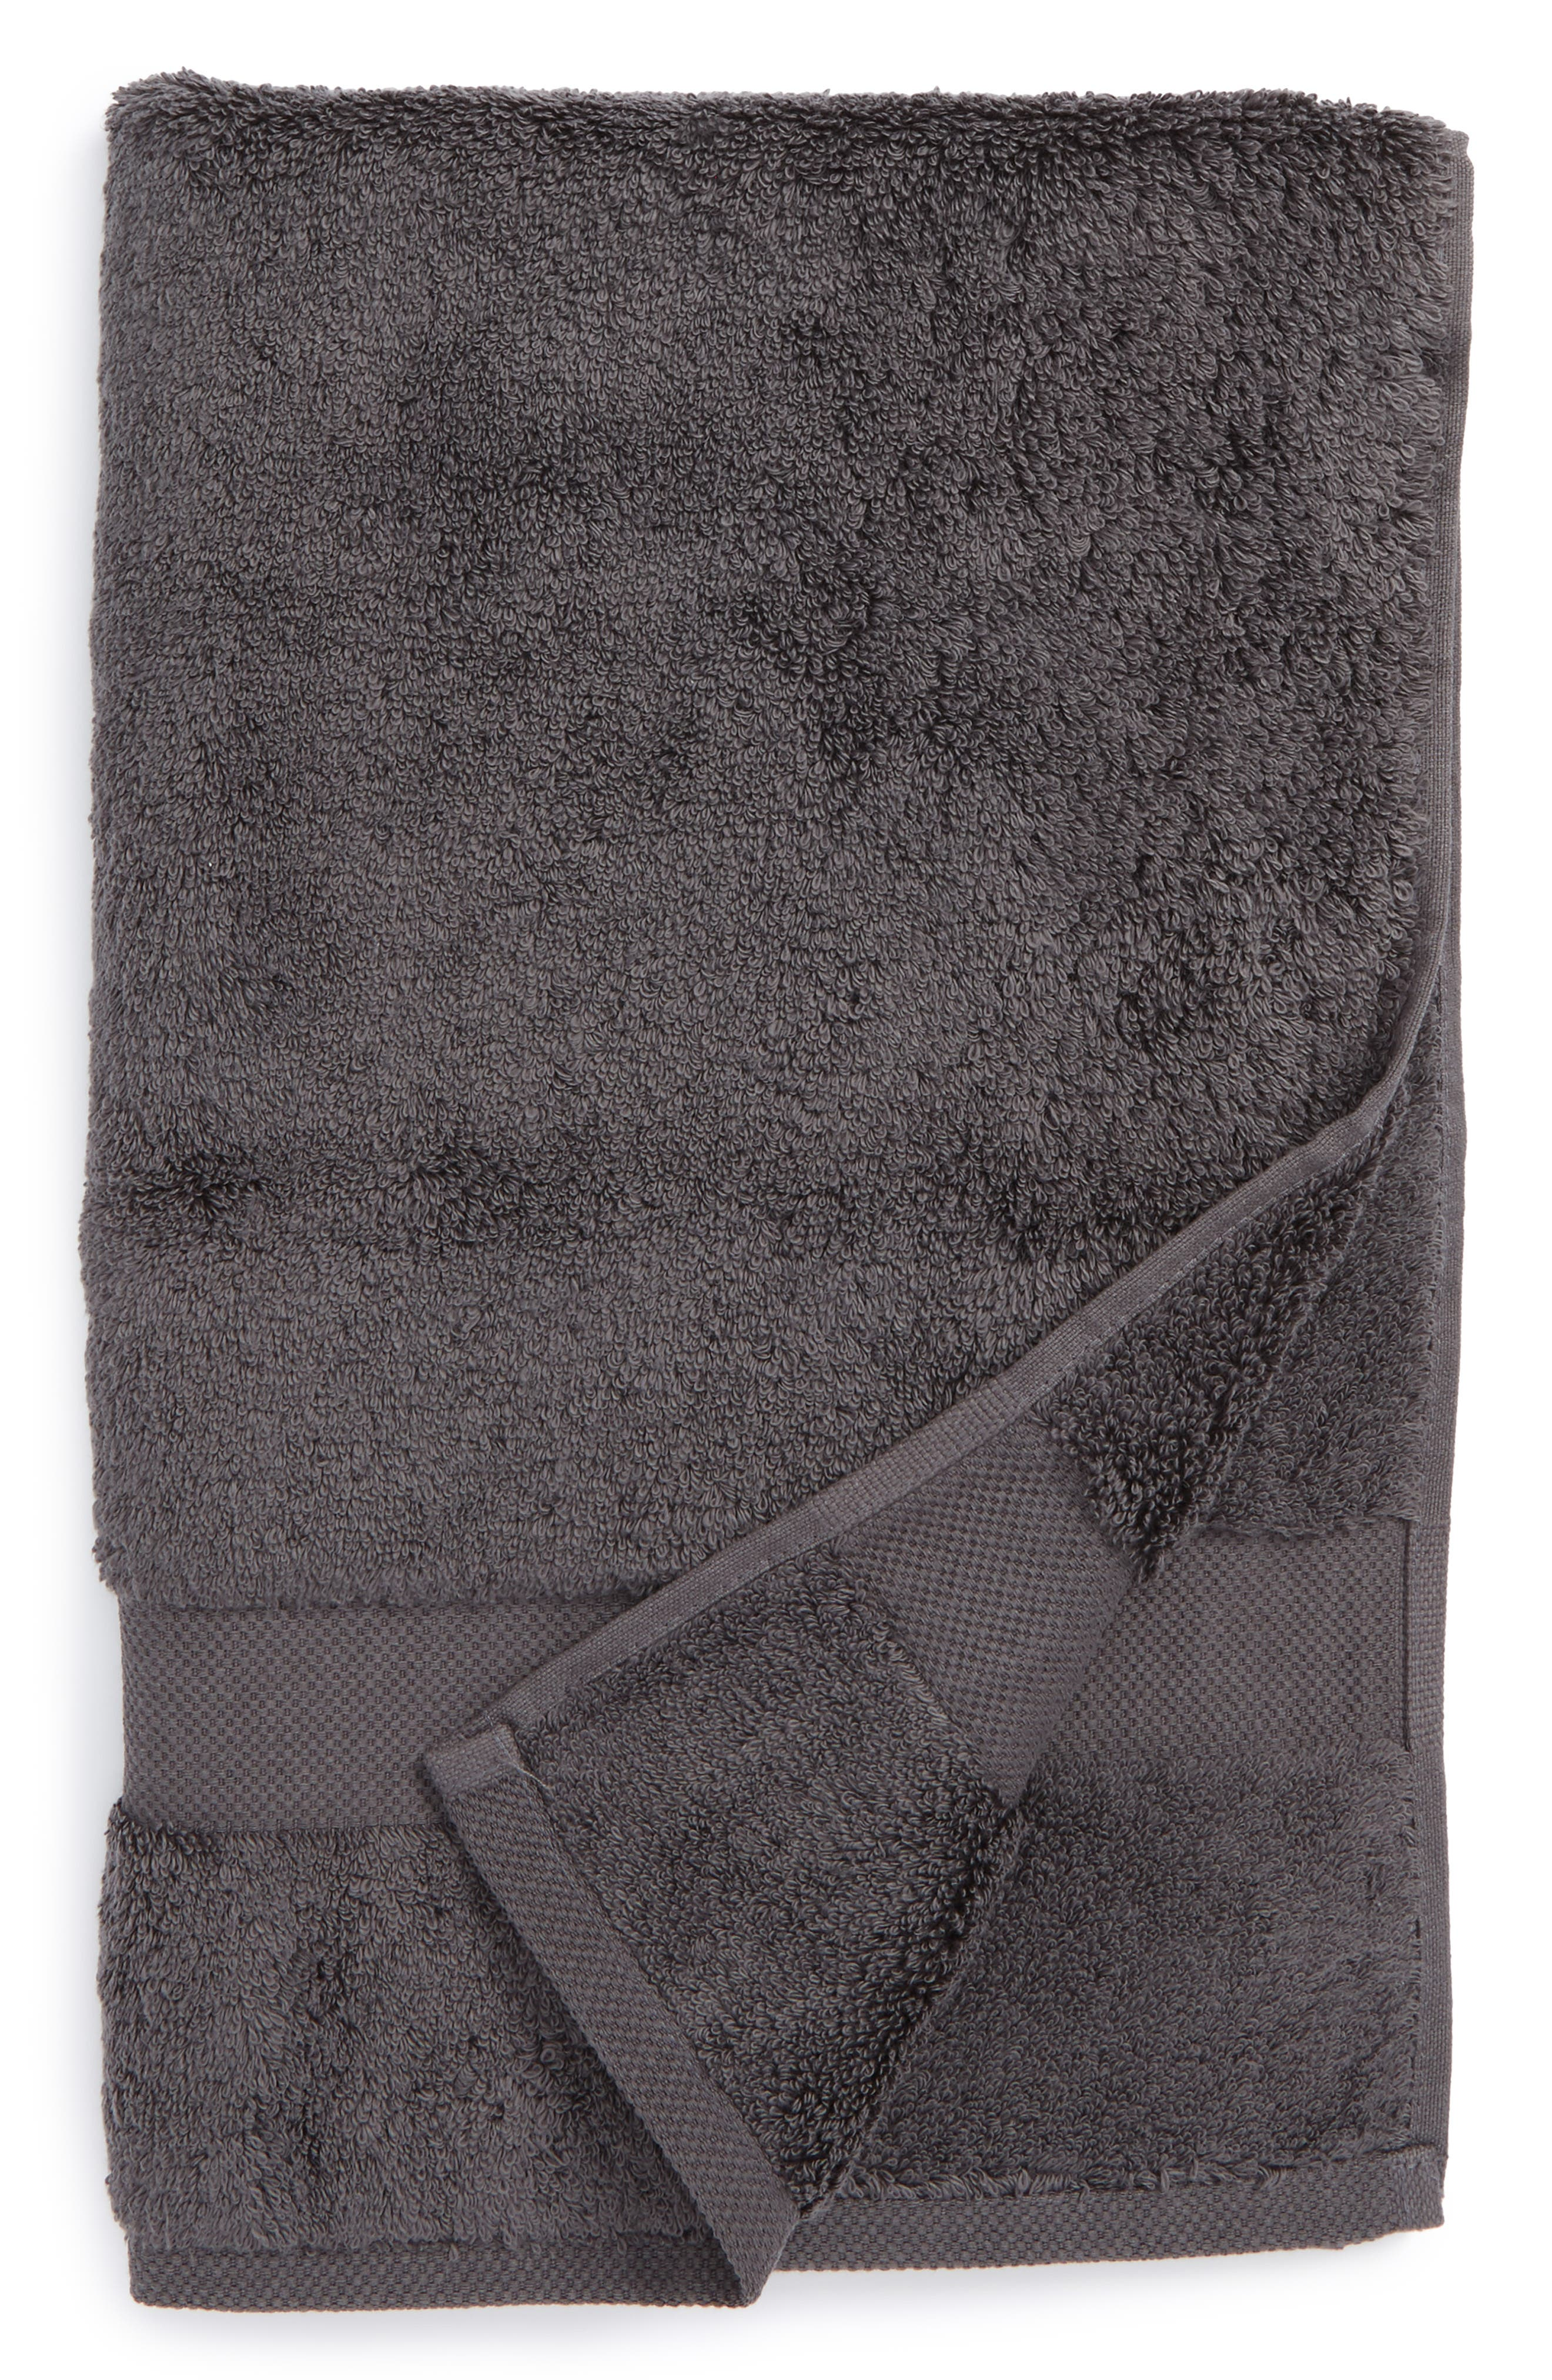 Lotus Hand Towel,                             Main thumbnail 1, color,                             CHARCOAL